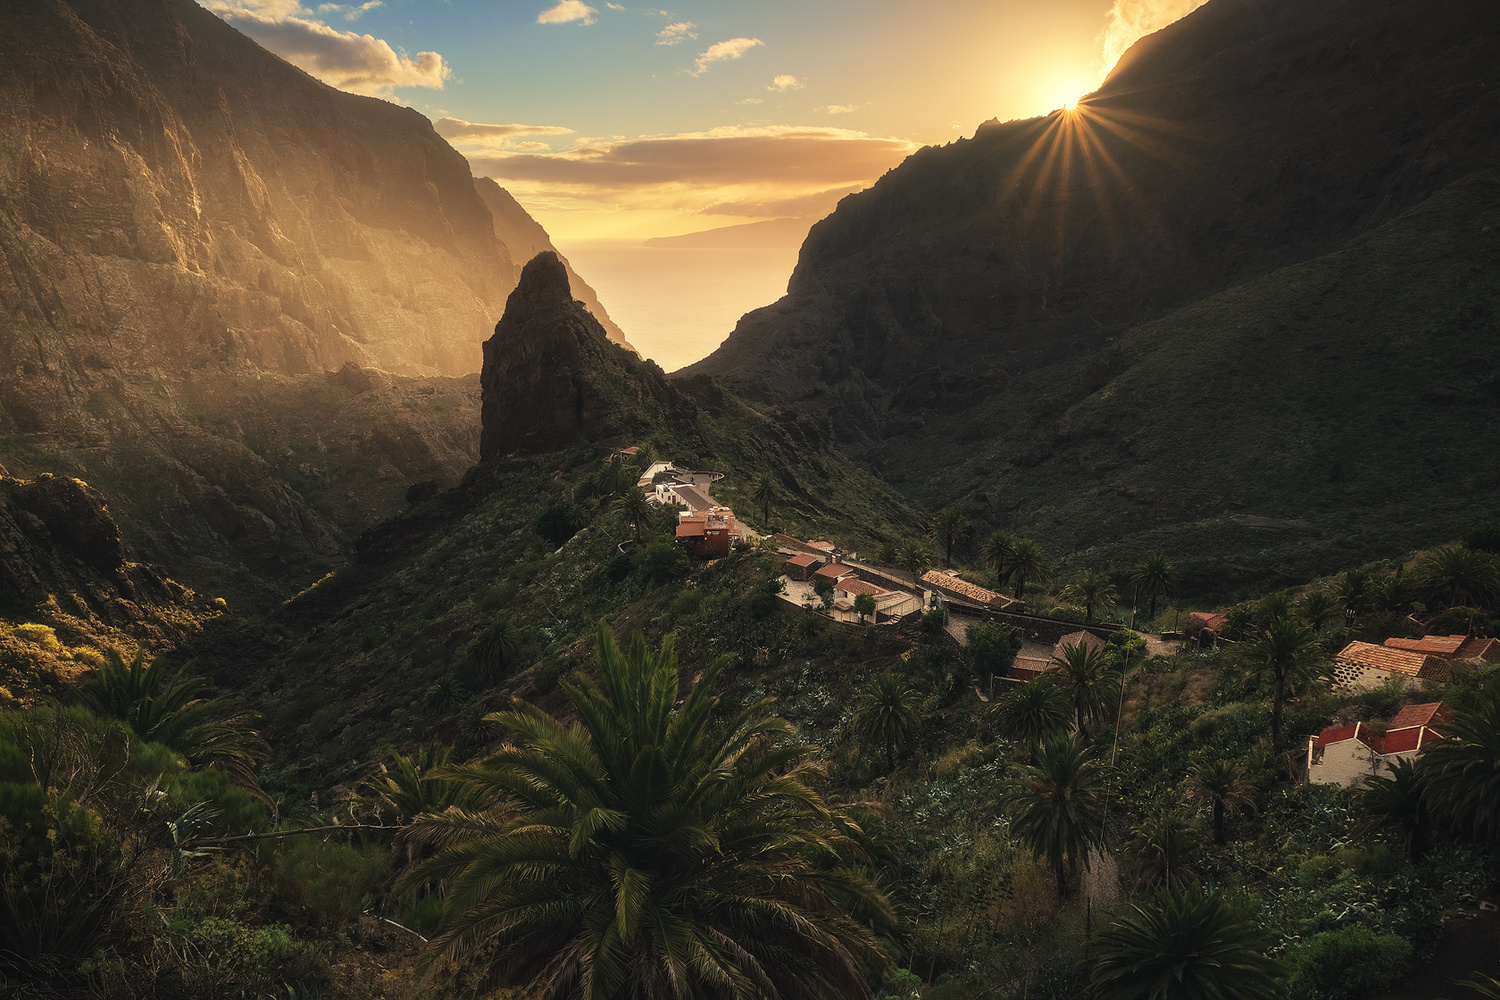 Tenerife - Masca Valley by Jean Claude Castor